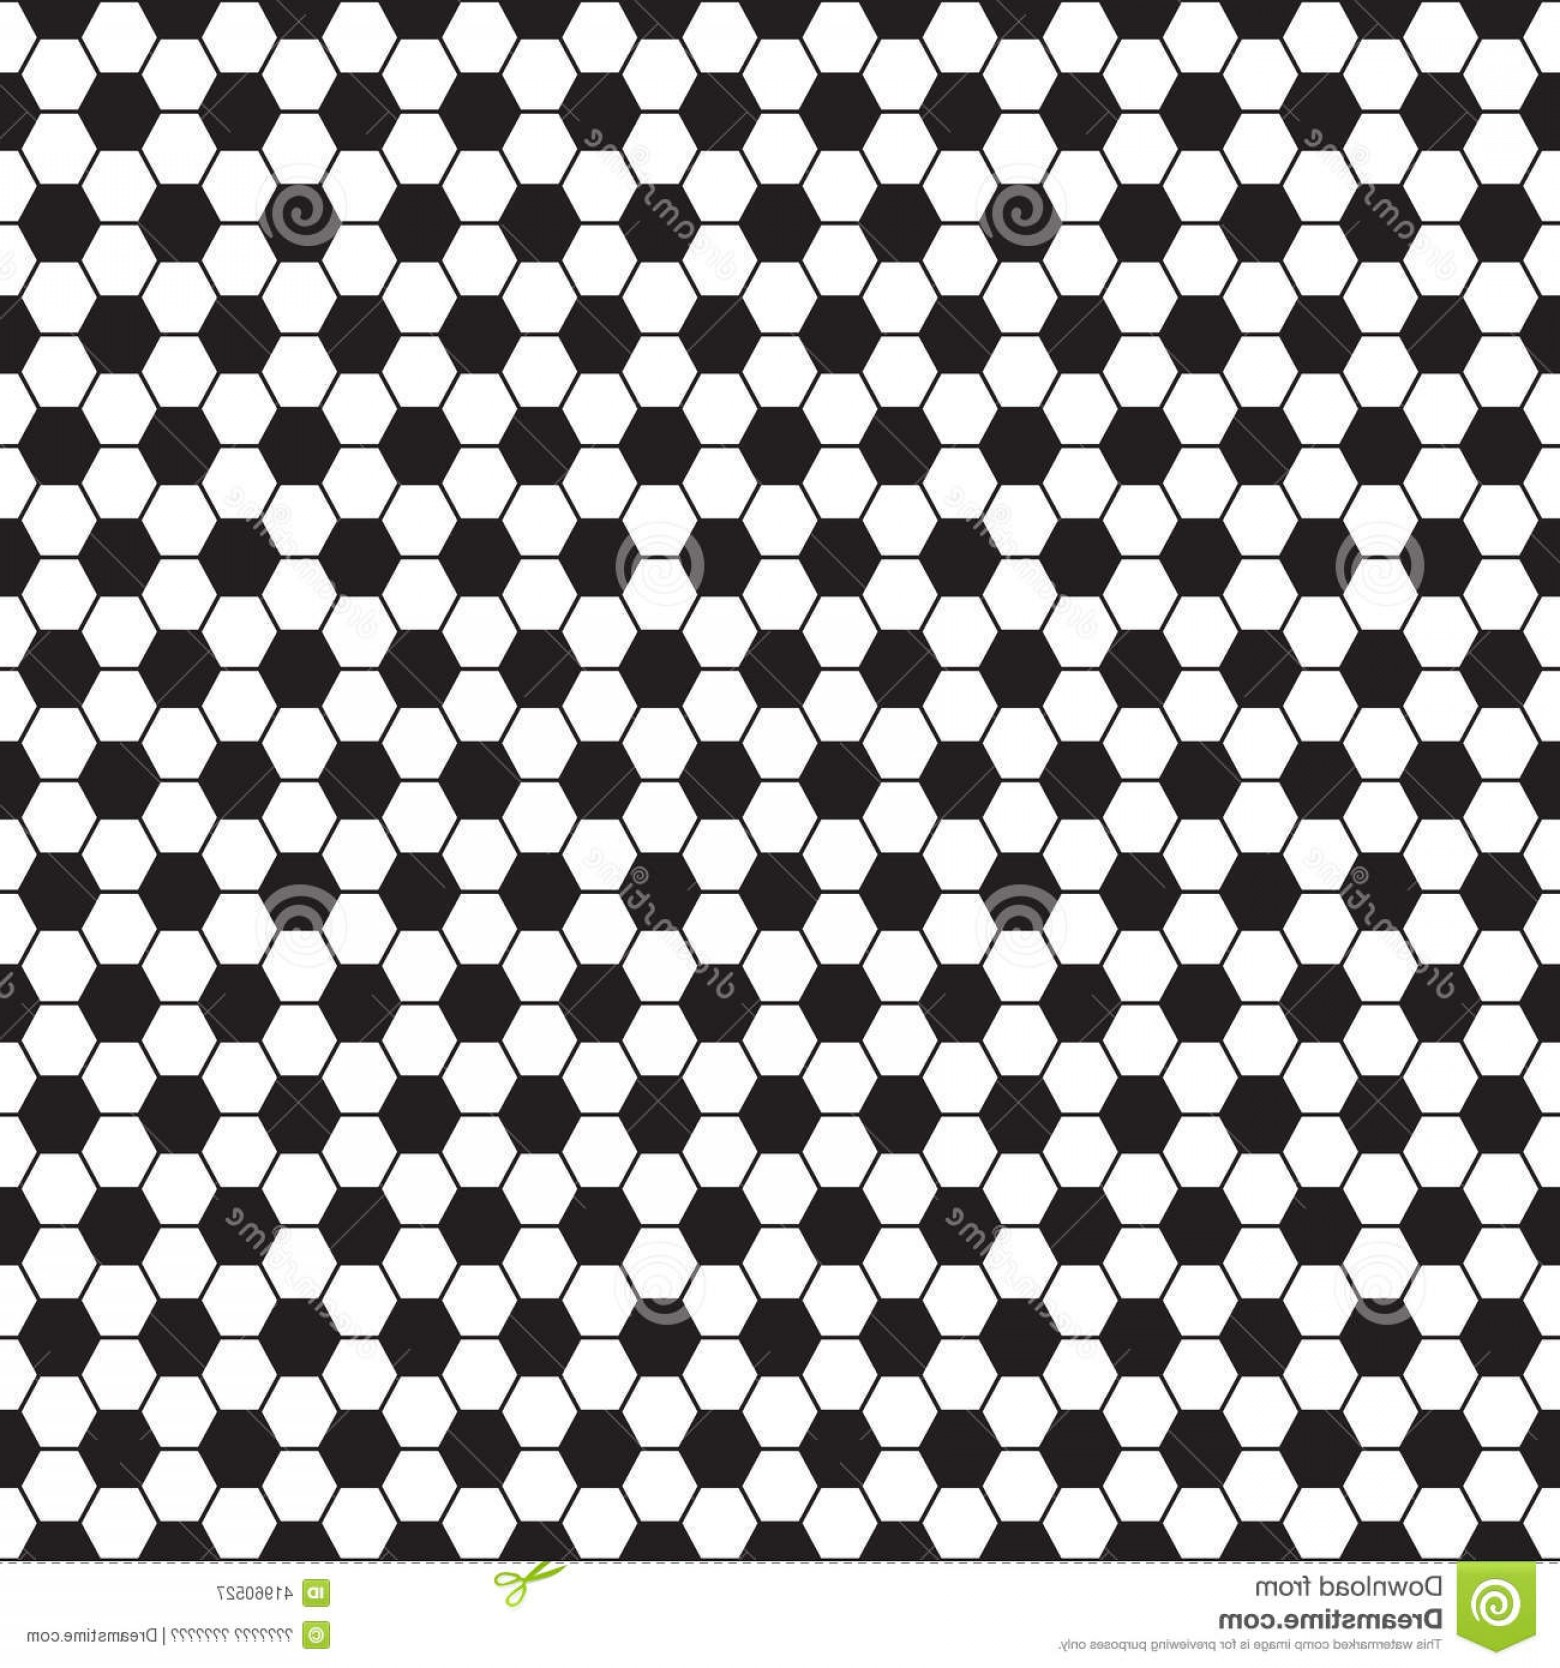 Vector Soccer Ball Pattern: Stock Illustration Soccer Ball Vector Seamless Pattern Texture Black White Hexagon Image